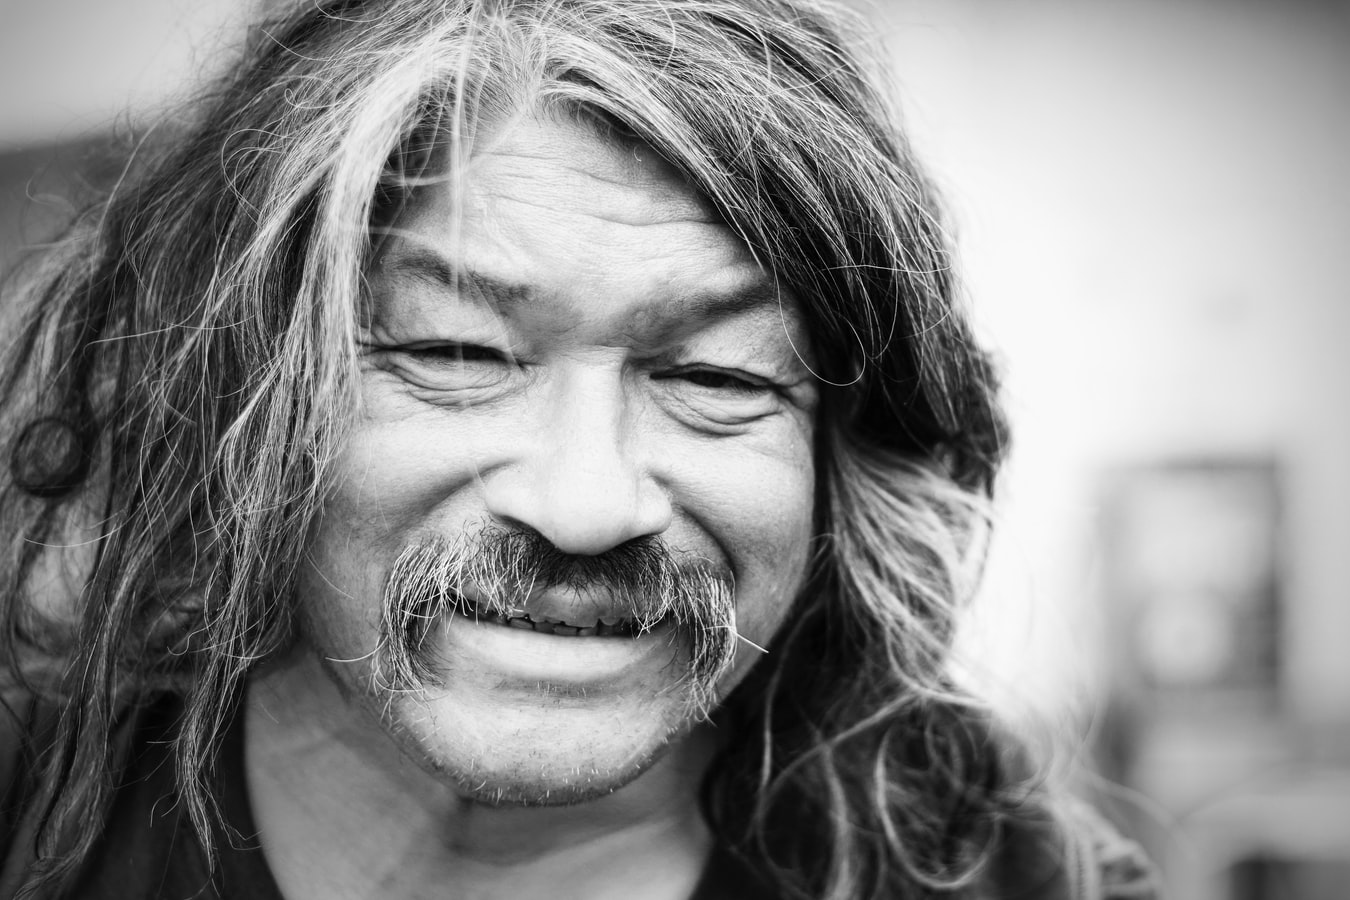 Stock photo of smiling man with long hair and moustache.